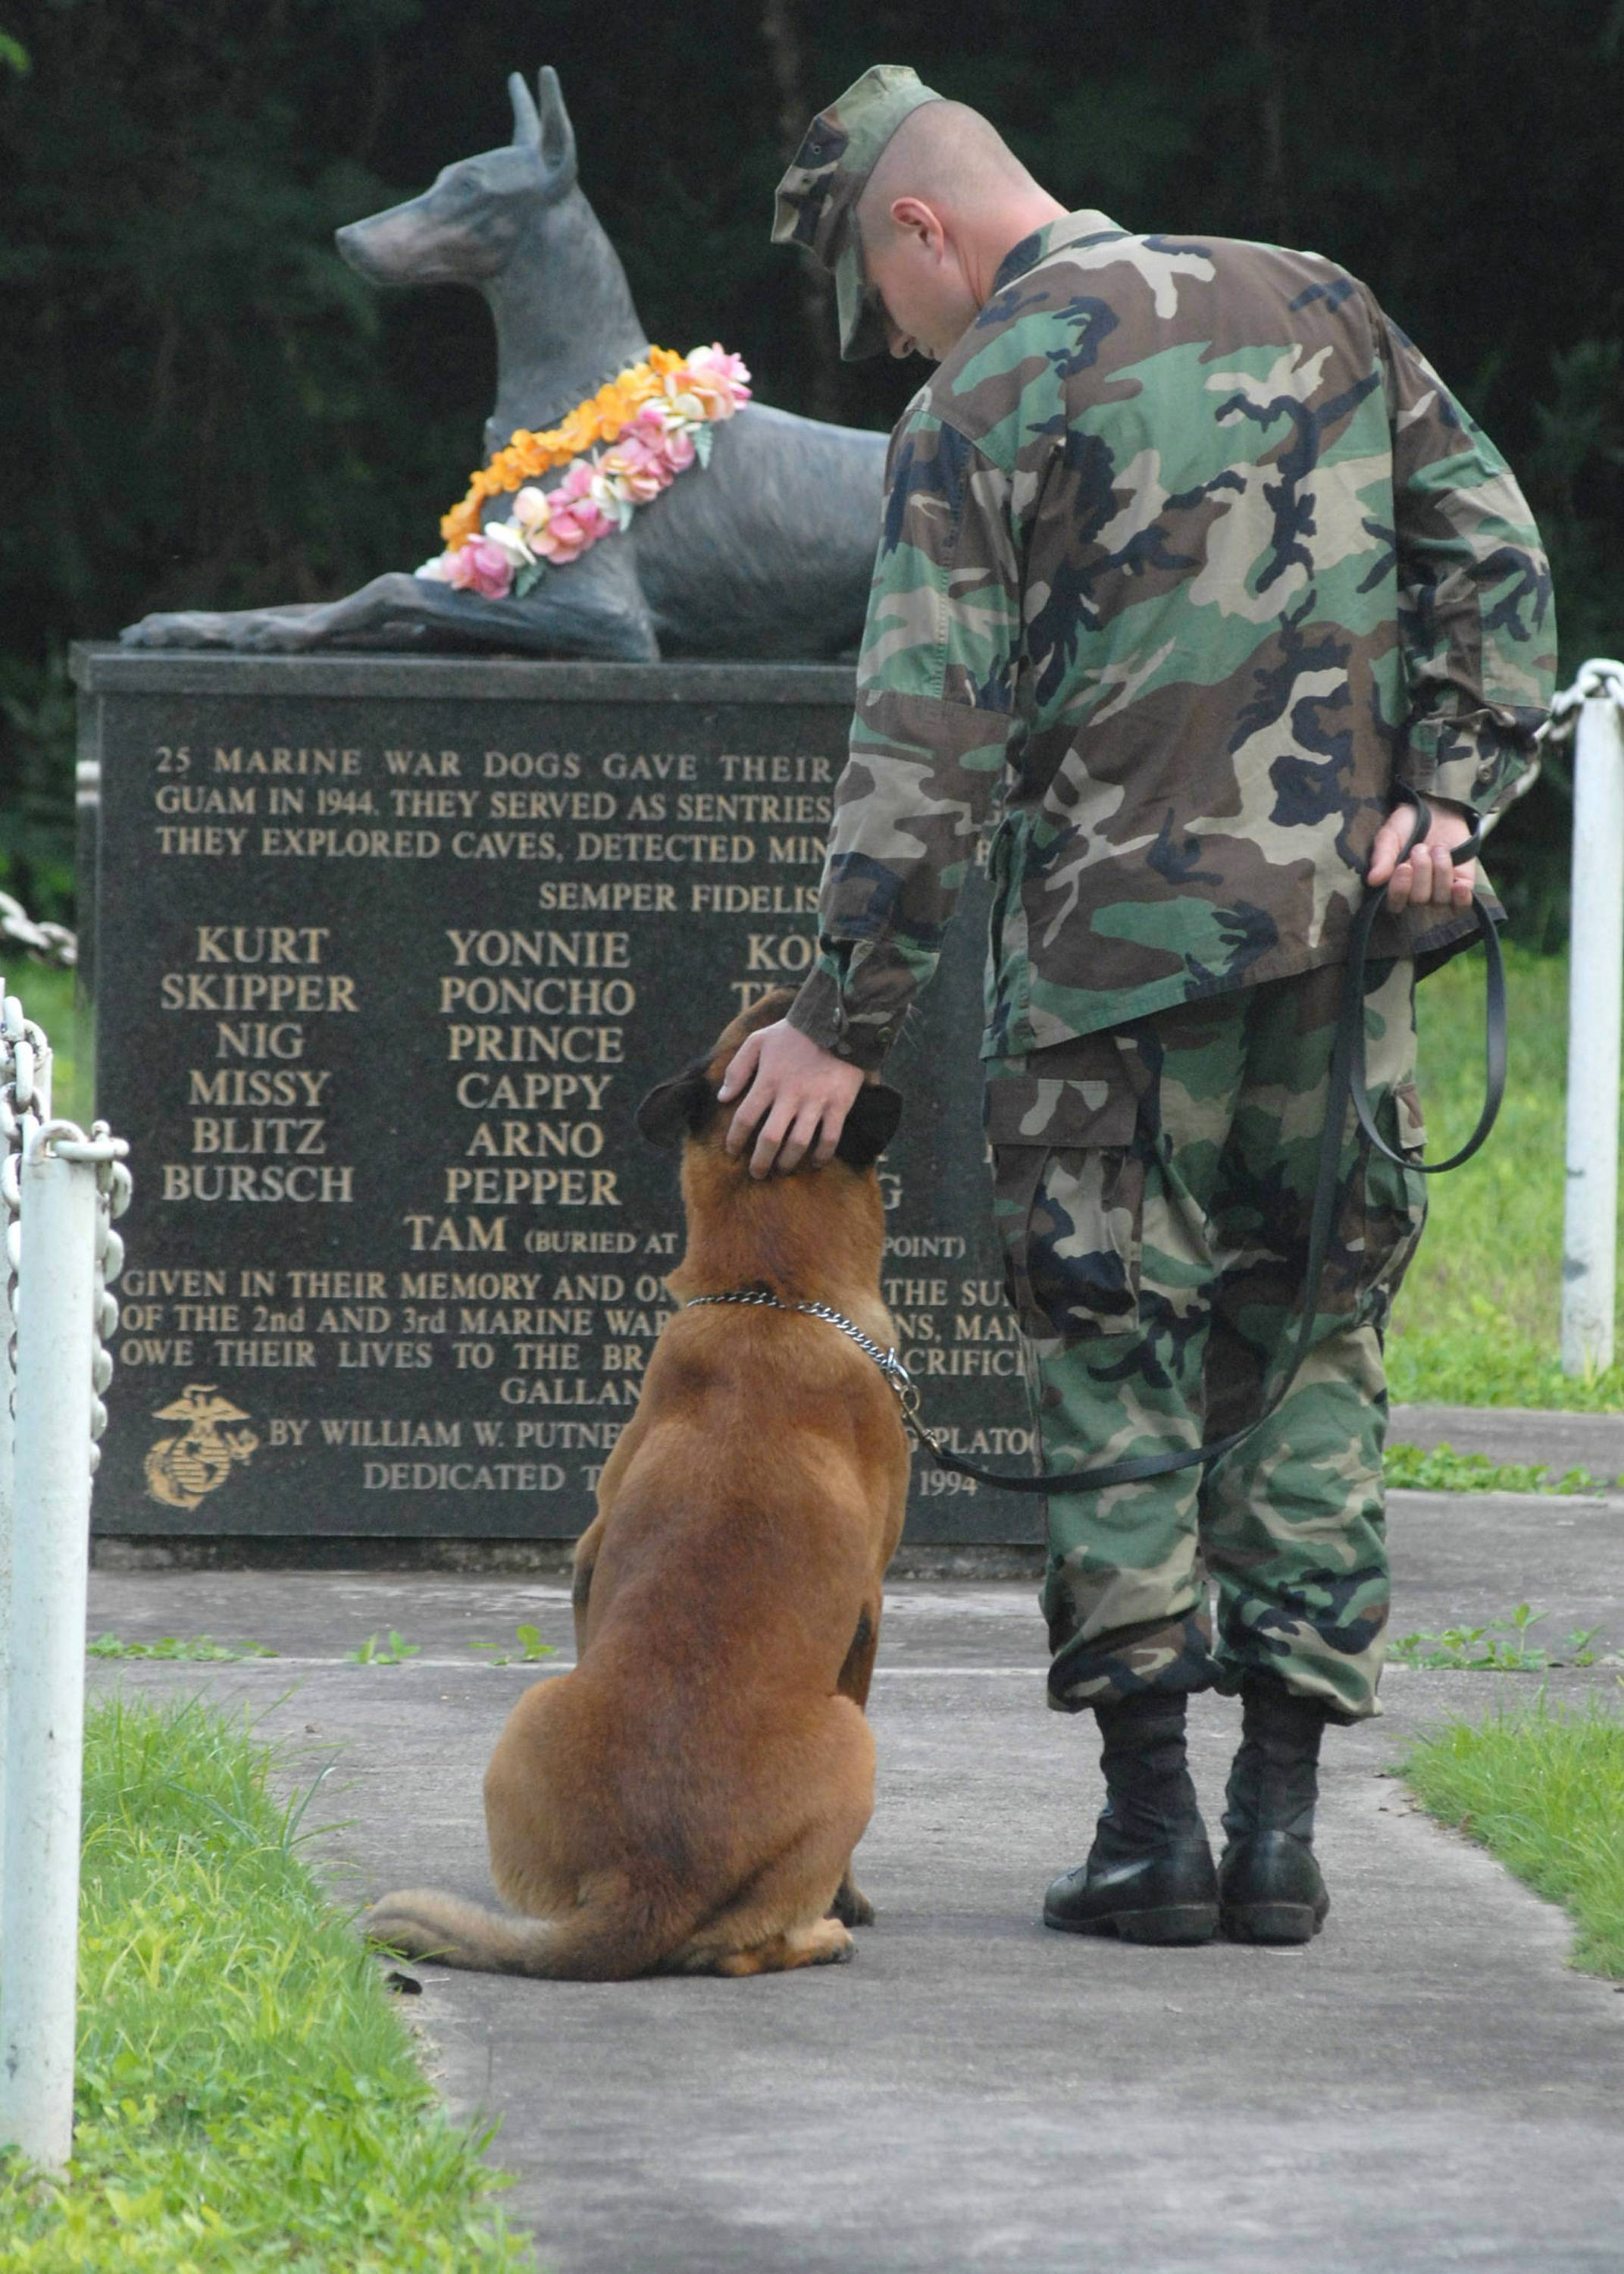 honor of our canine friends on Veteran's Day